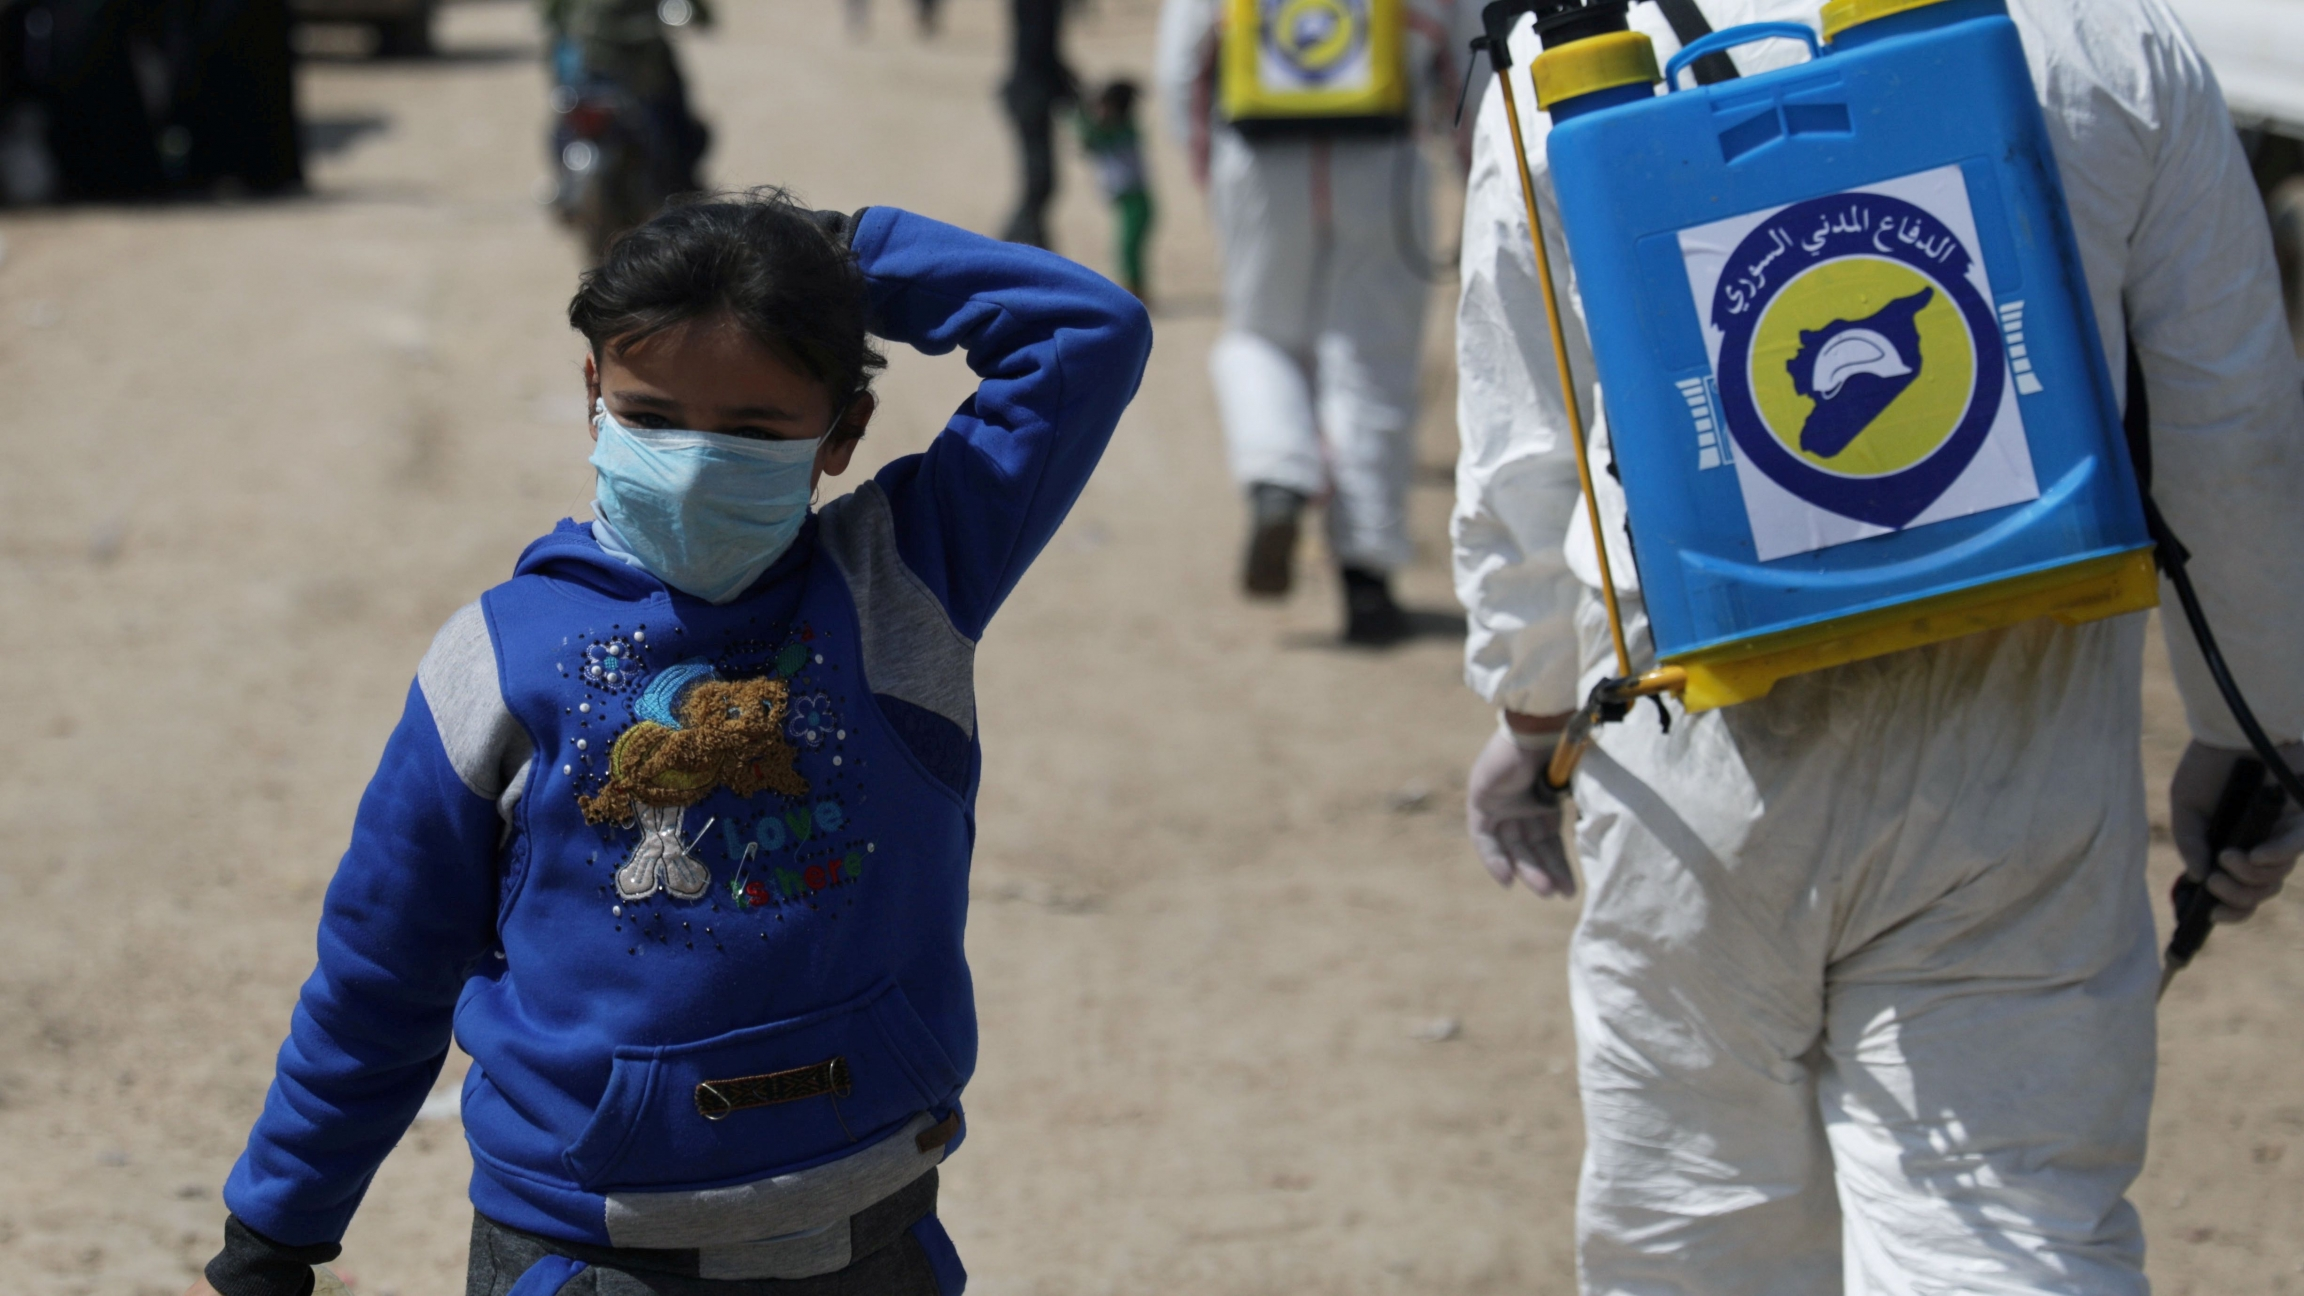 An internally displaced Syrian girl wears a face mask as members of the Syrian Civil defence sanitize the Bab al-Nour internally displaced persons camp, to prevent the spread of the coronavirus (COVID-19) in Azaz, Syria, March 26, 2020.